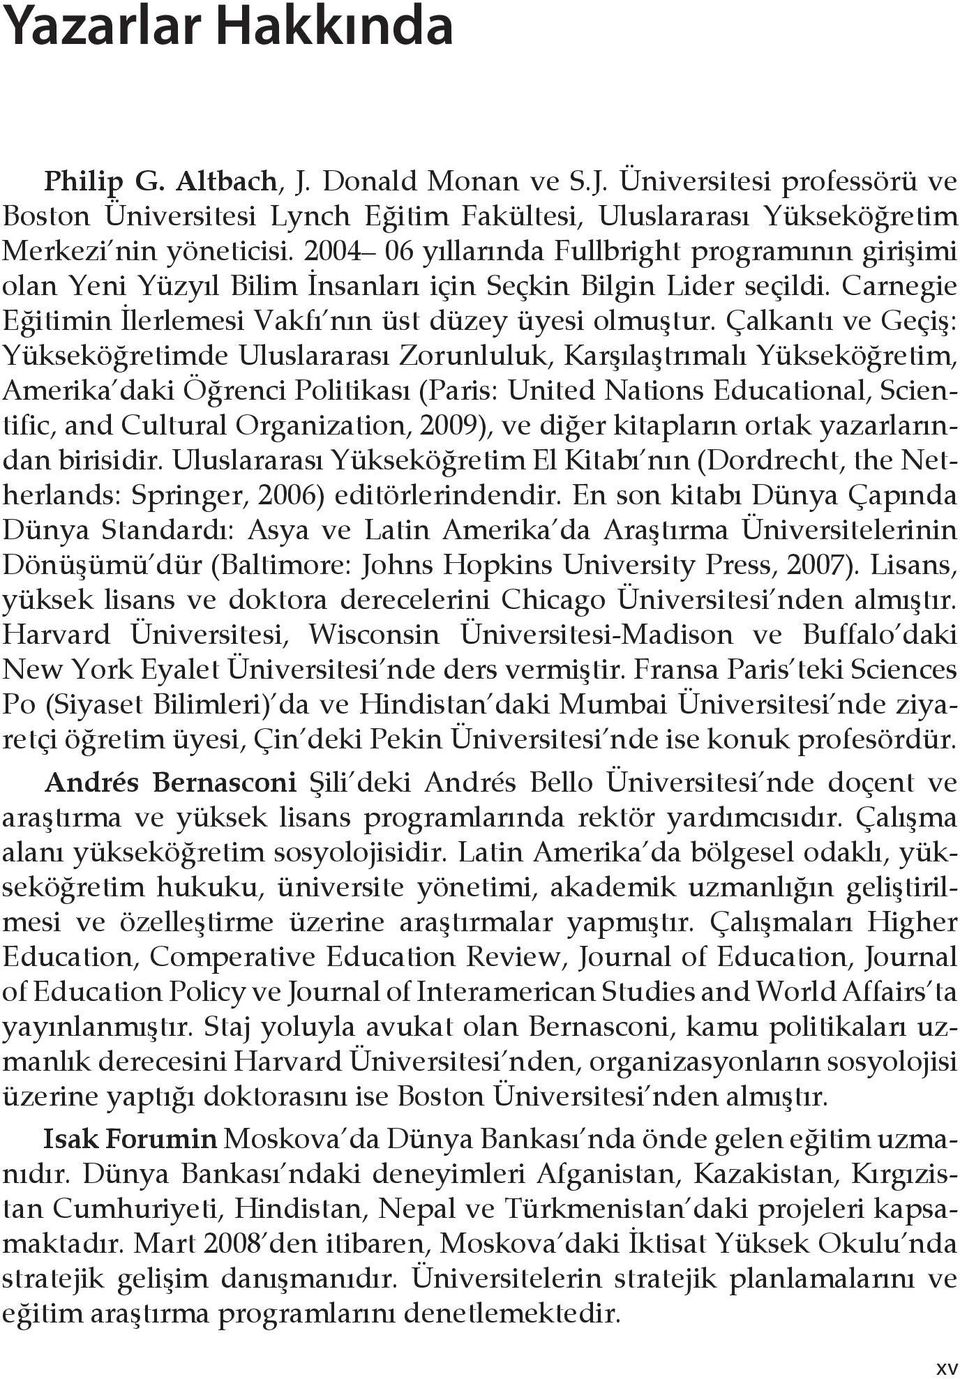 Çalkantı ve Geçiş: Yükseköğretimde Uluslararası Zorunluluk, Karşılaştrımalı Yükseköğretim, Amerika daki Öğrenci Politikası (Paris: United Nations Educational, Scientific, and Cultural Organization,